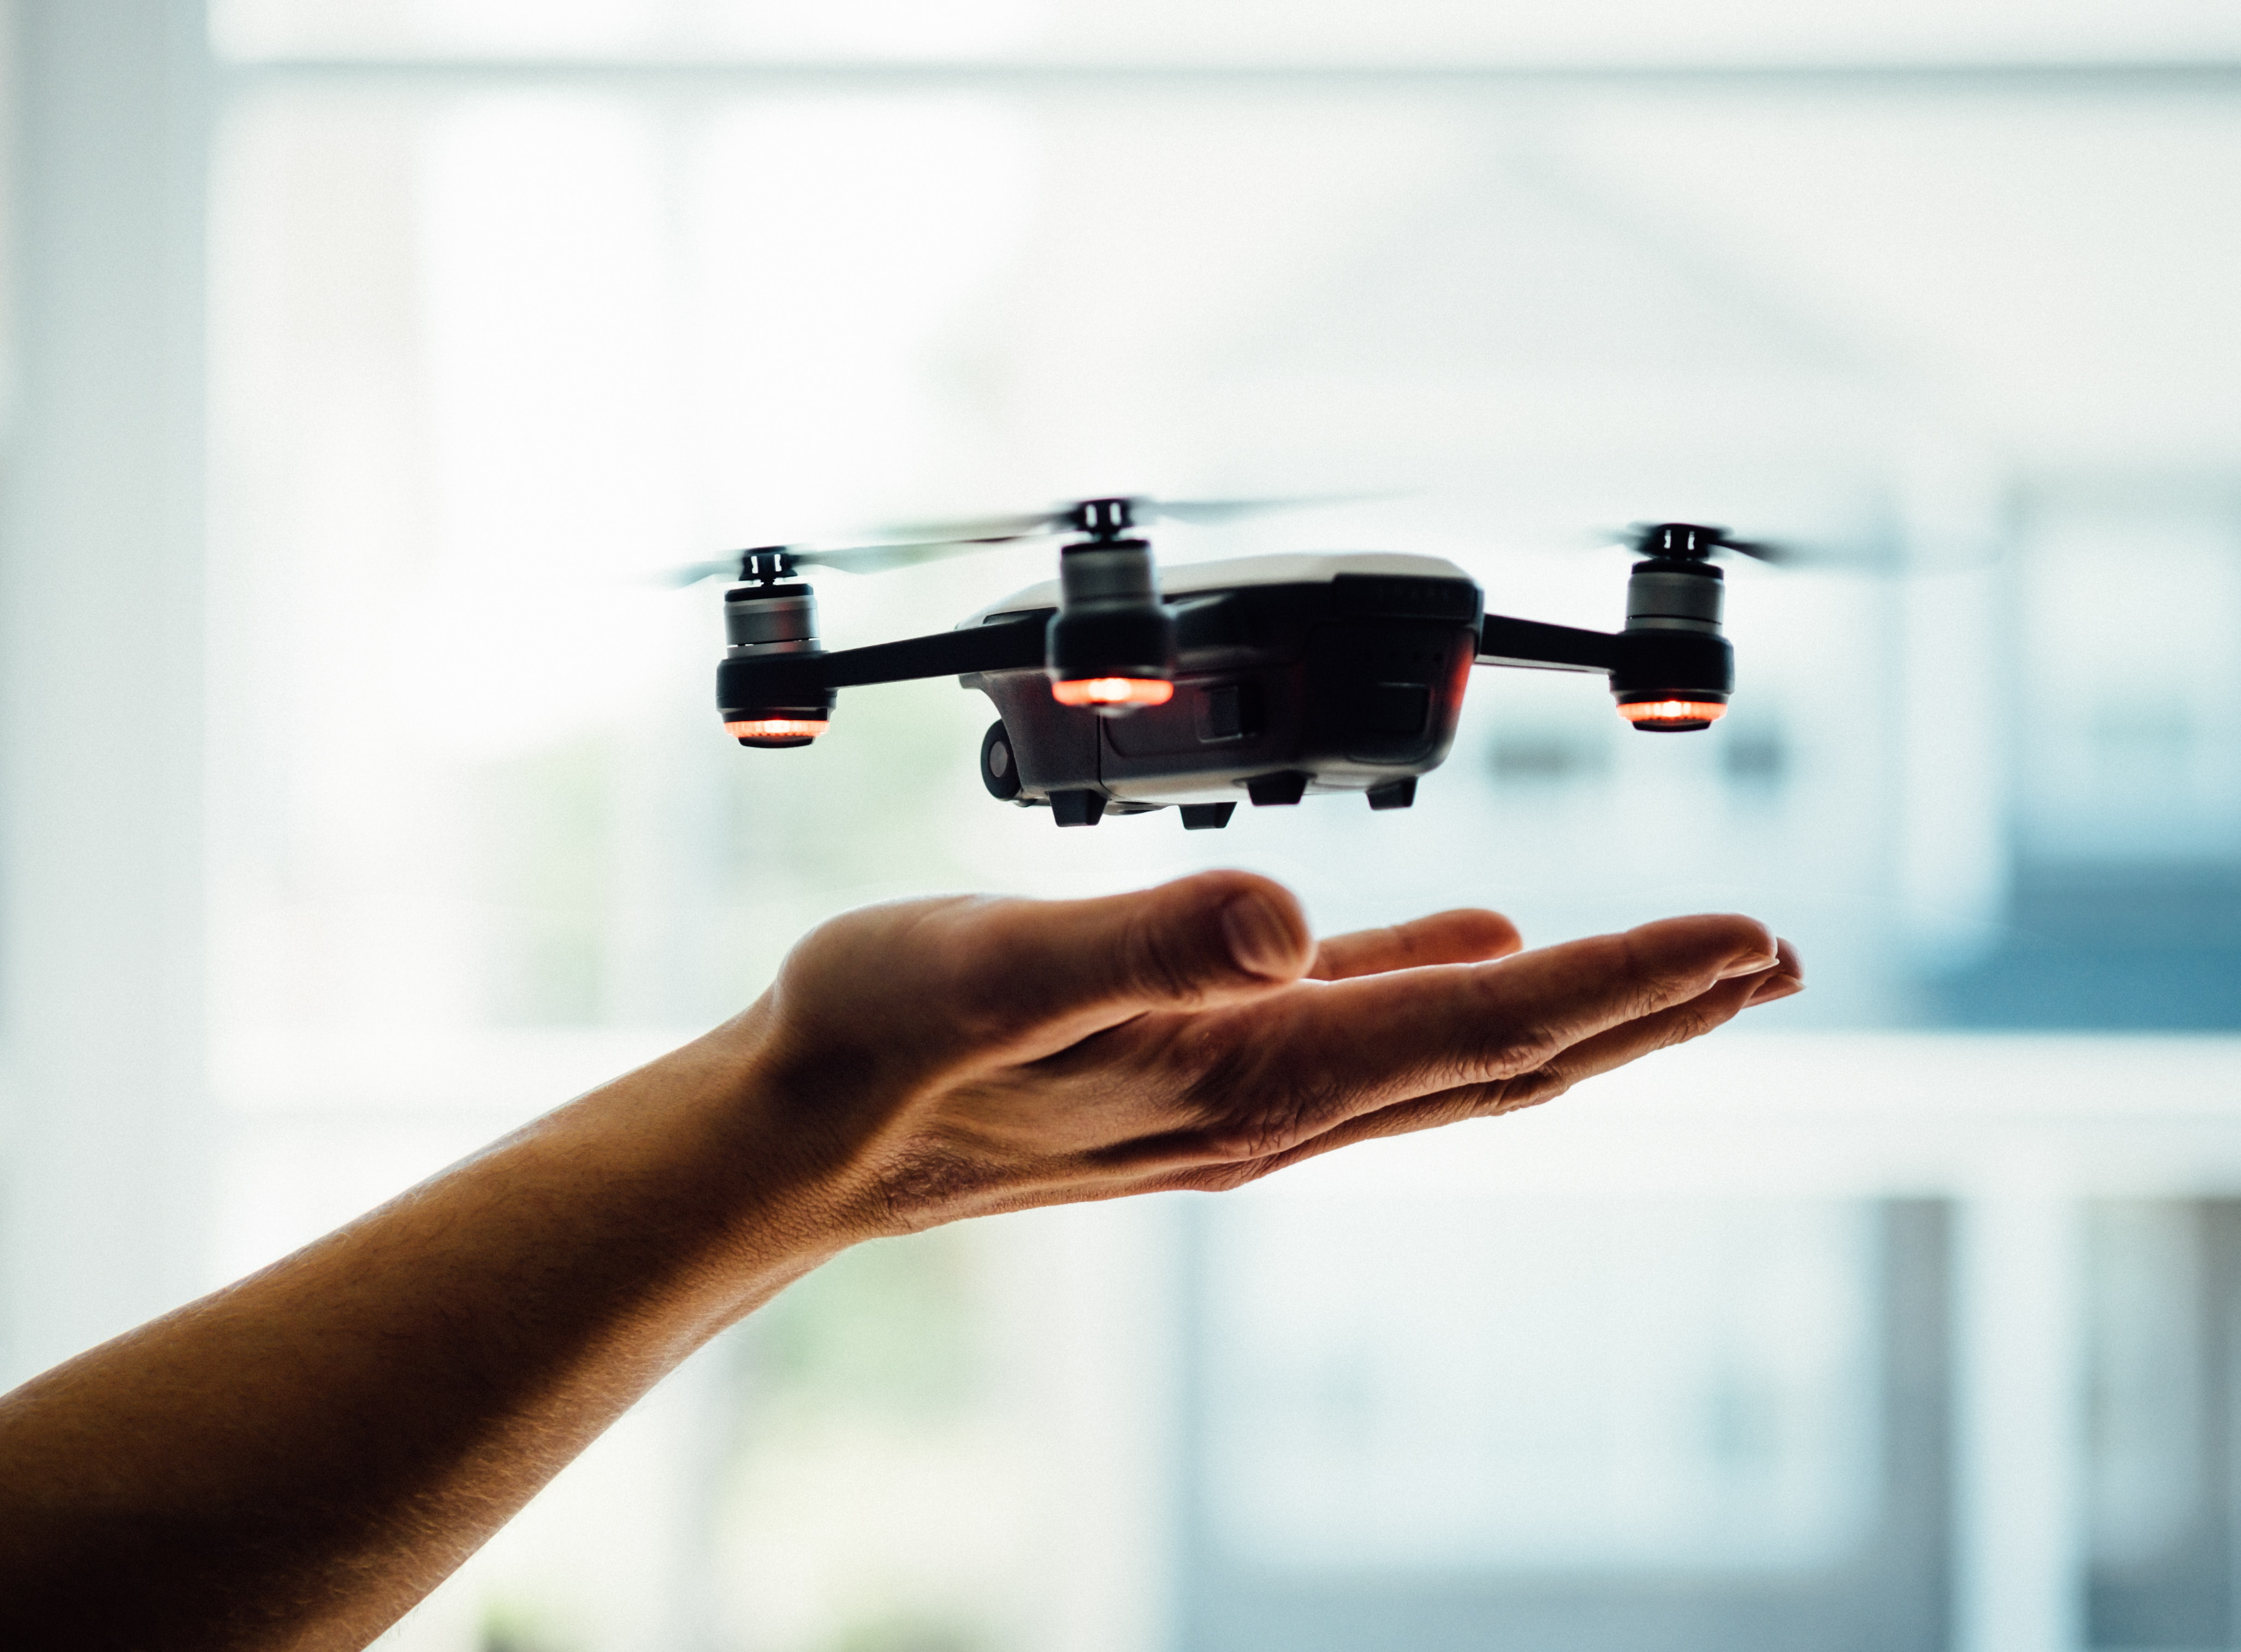 digital transformation and strategy - drone over a hand